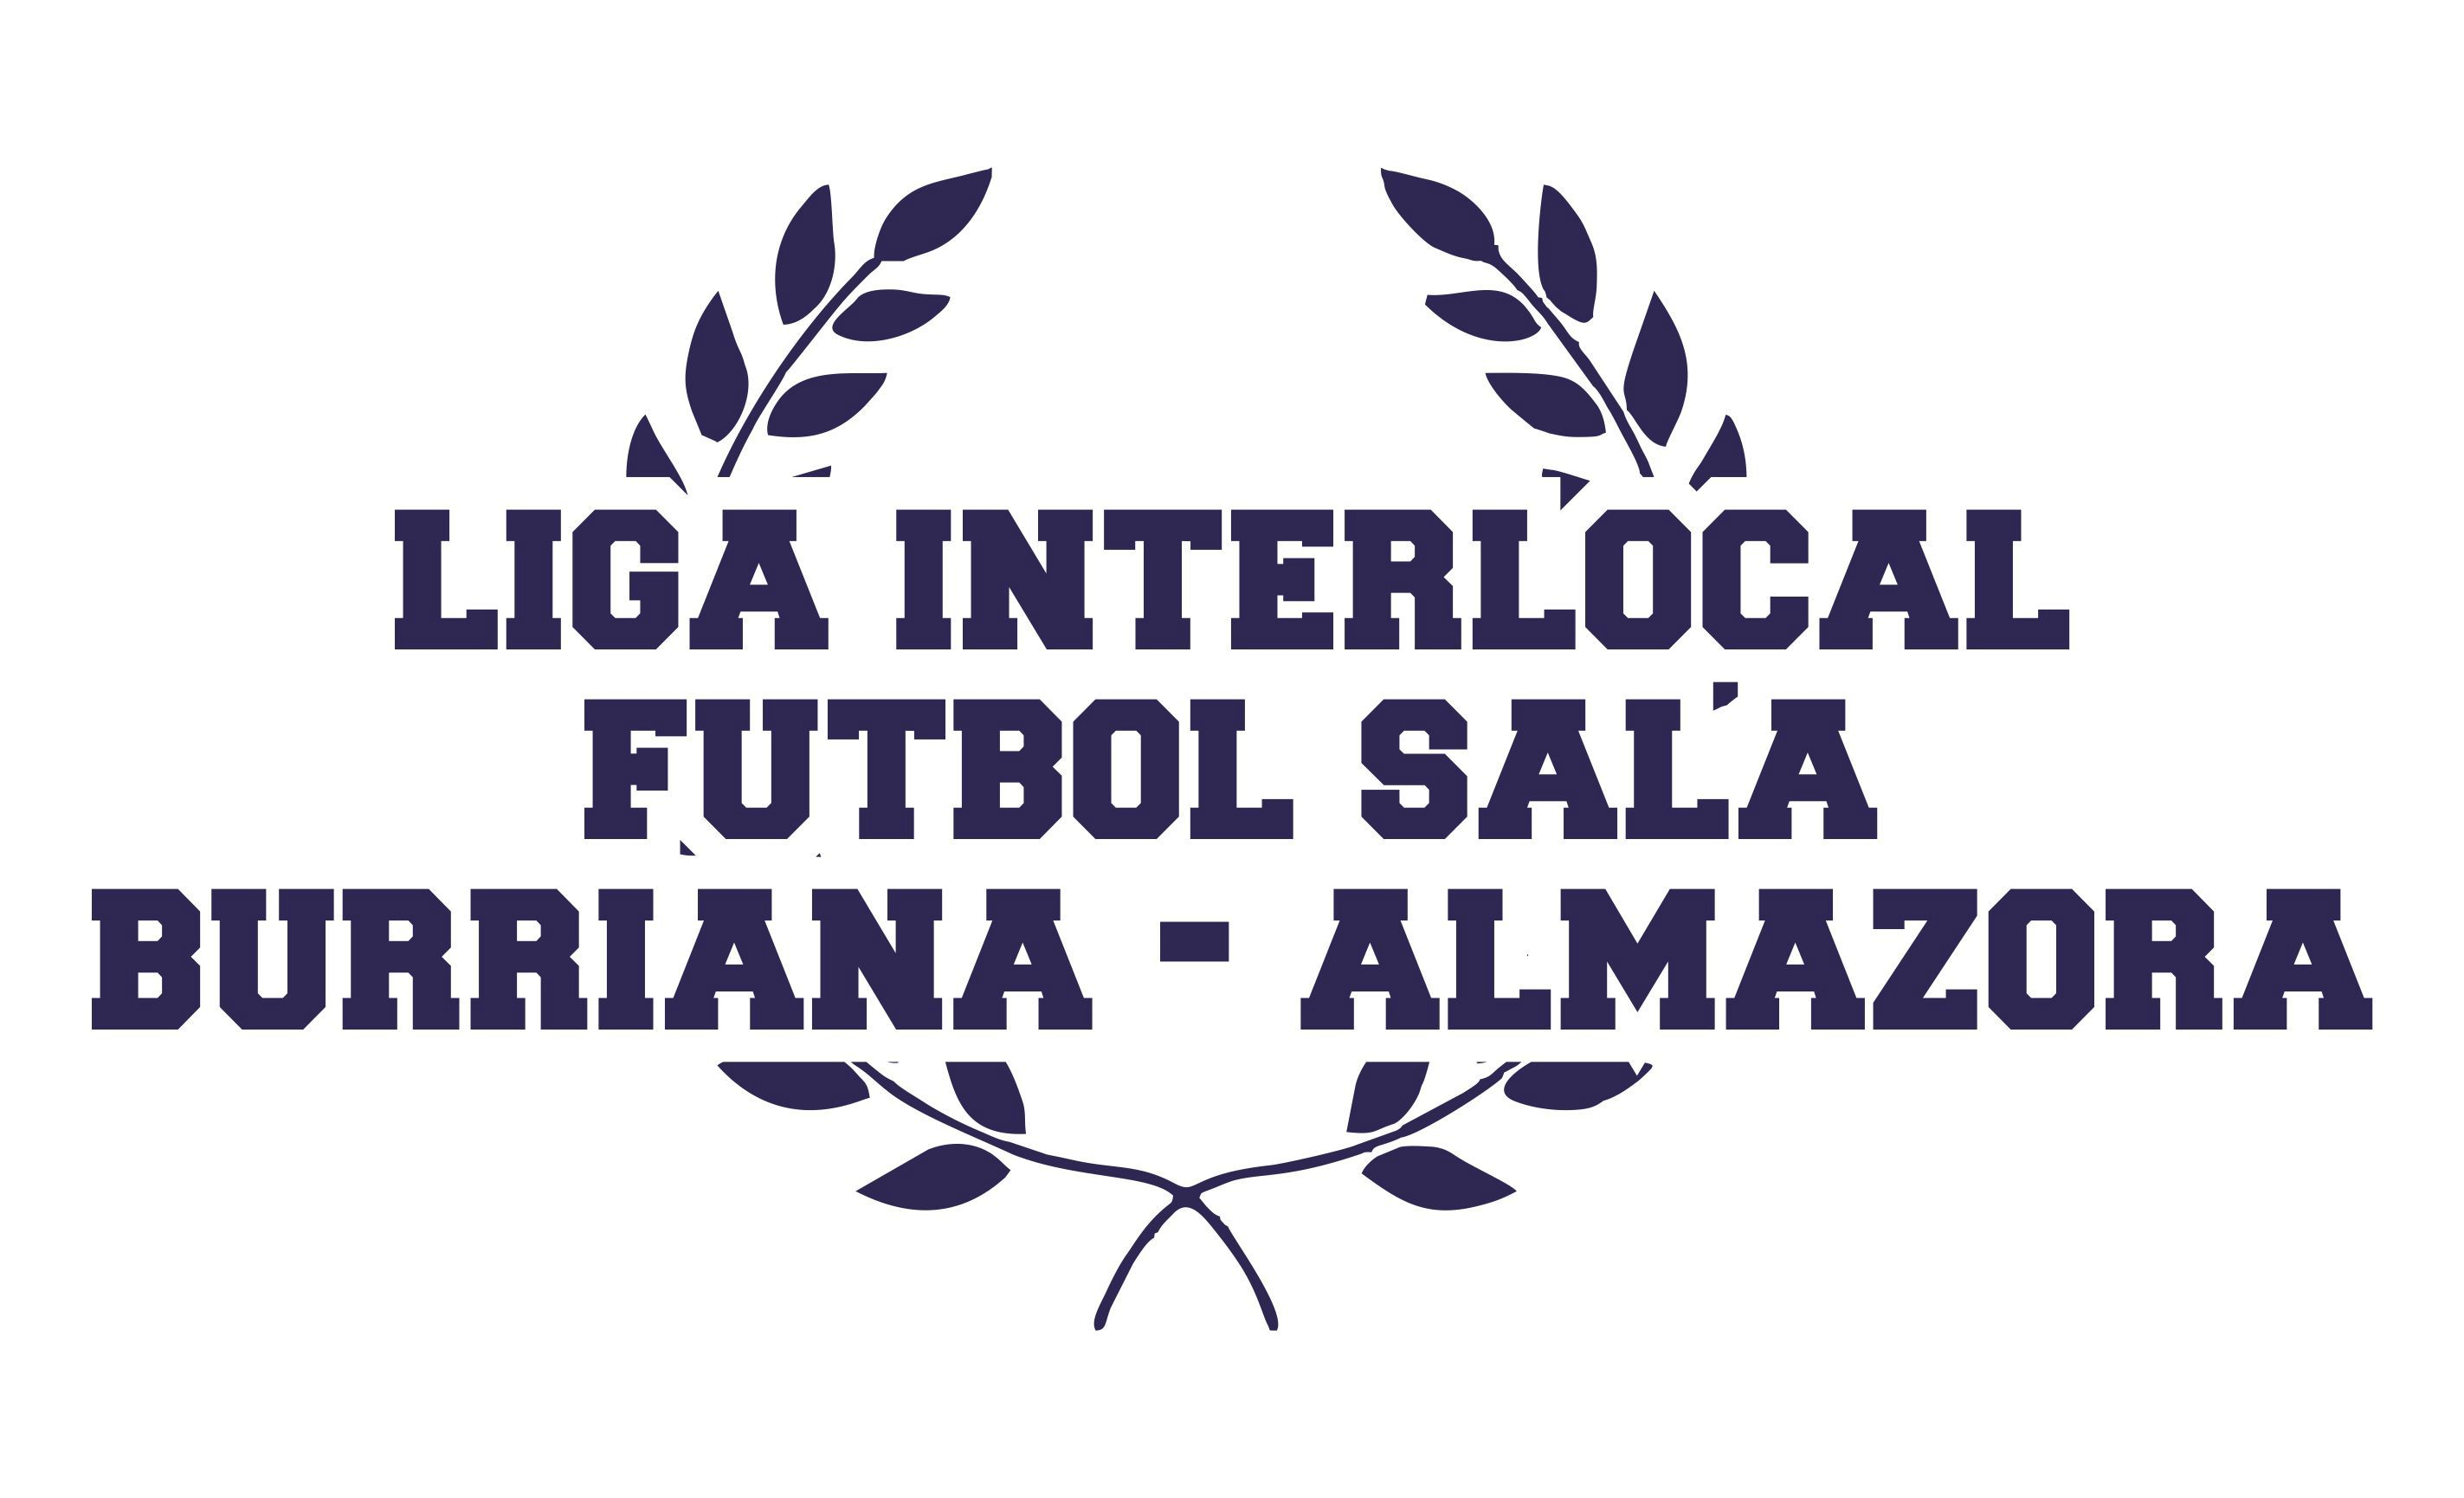 LOGO LIGA INTERLOCAL